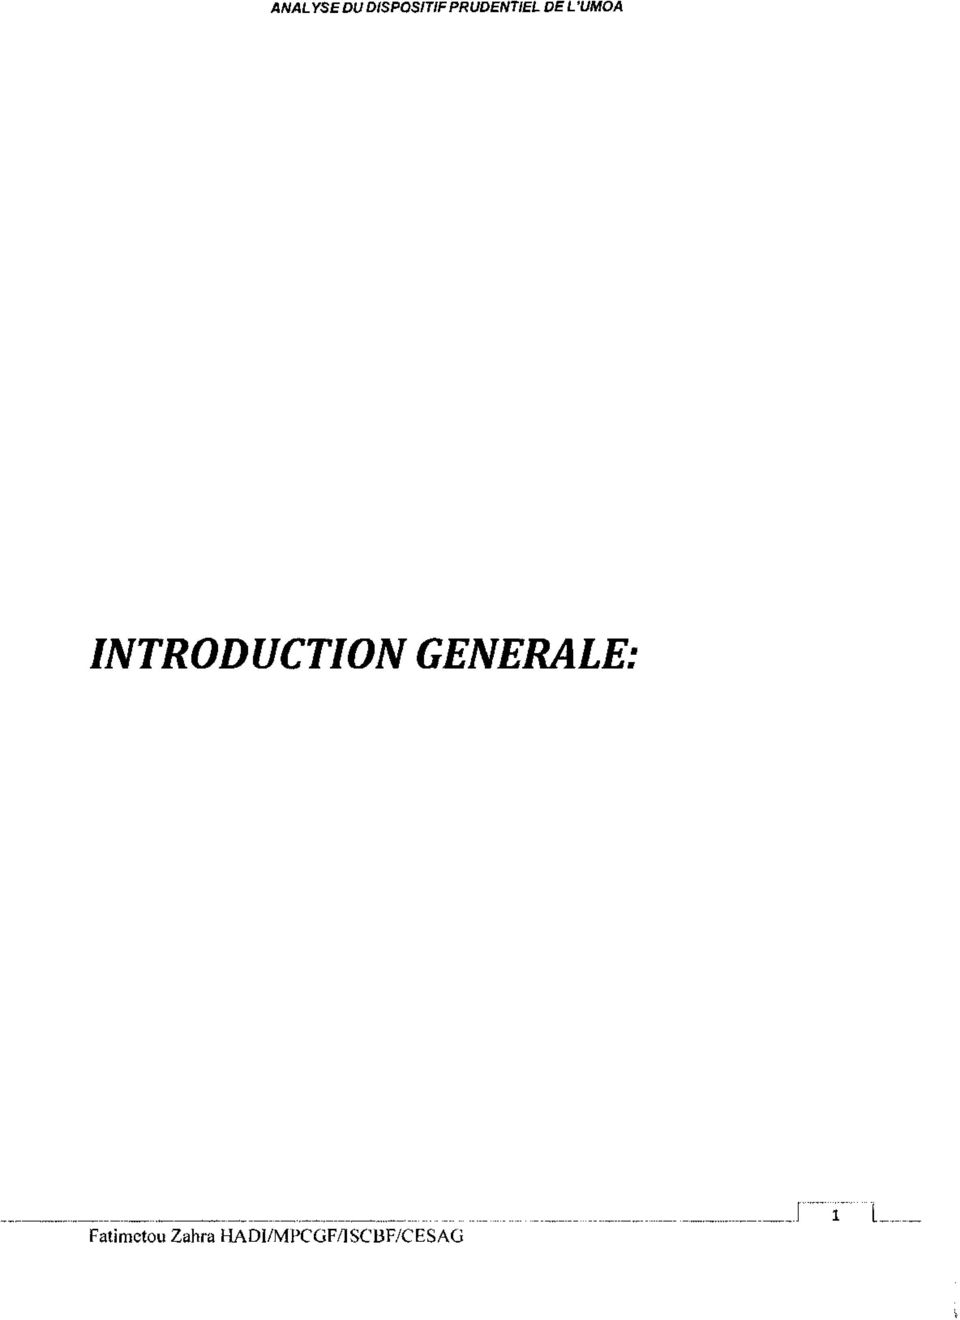 INTRODUCTION GENERALE: